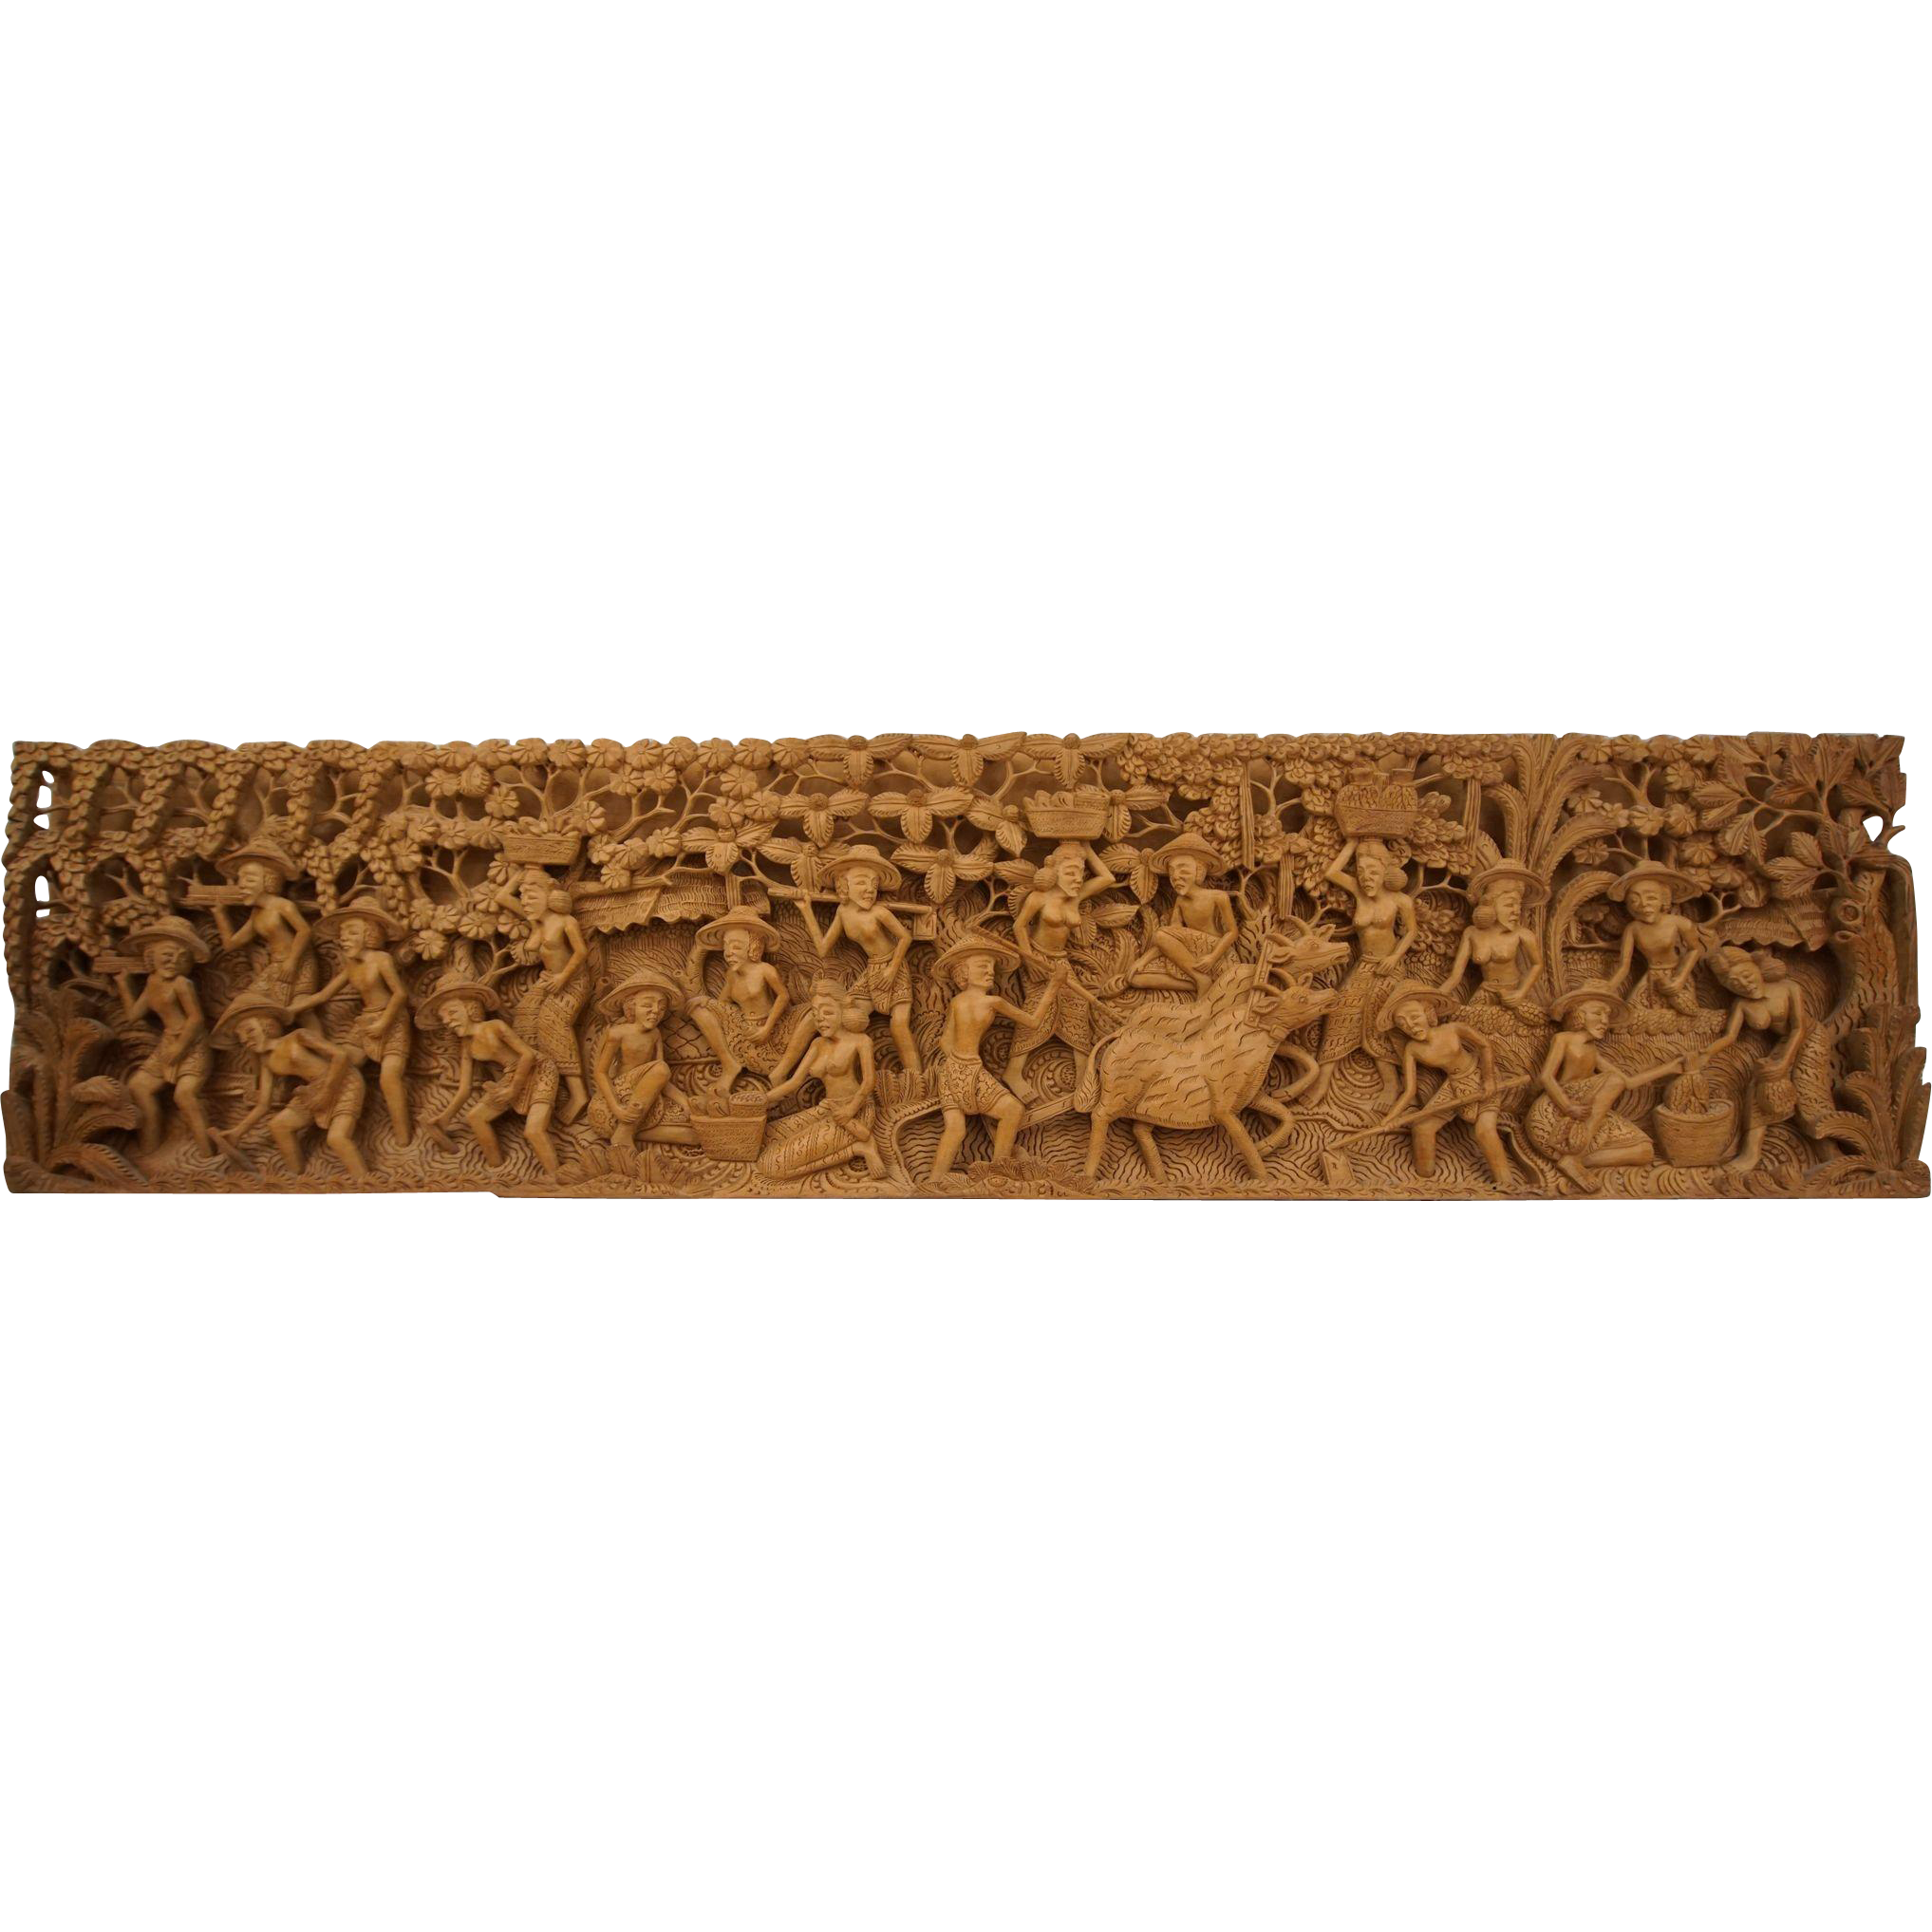 Wood Carved Wall Decor Large Intricate Bali Hand Carved Wooden Wall Decor Hanging Piece